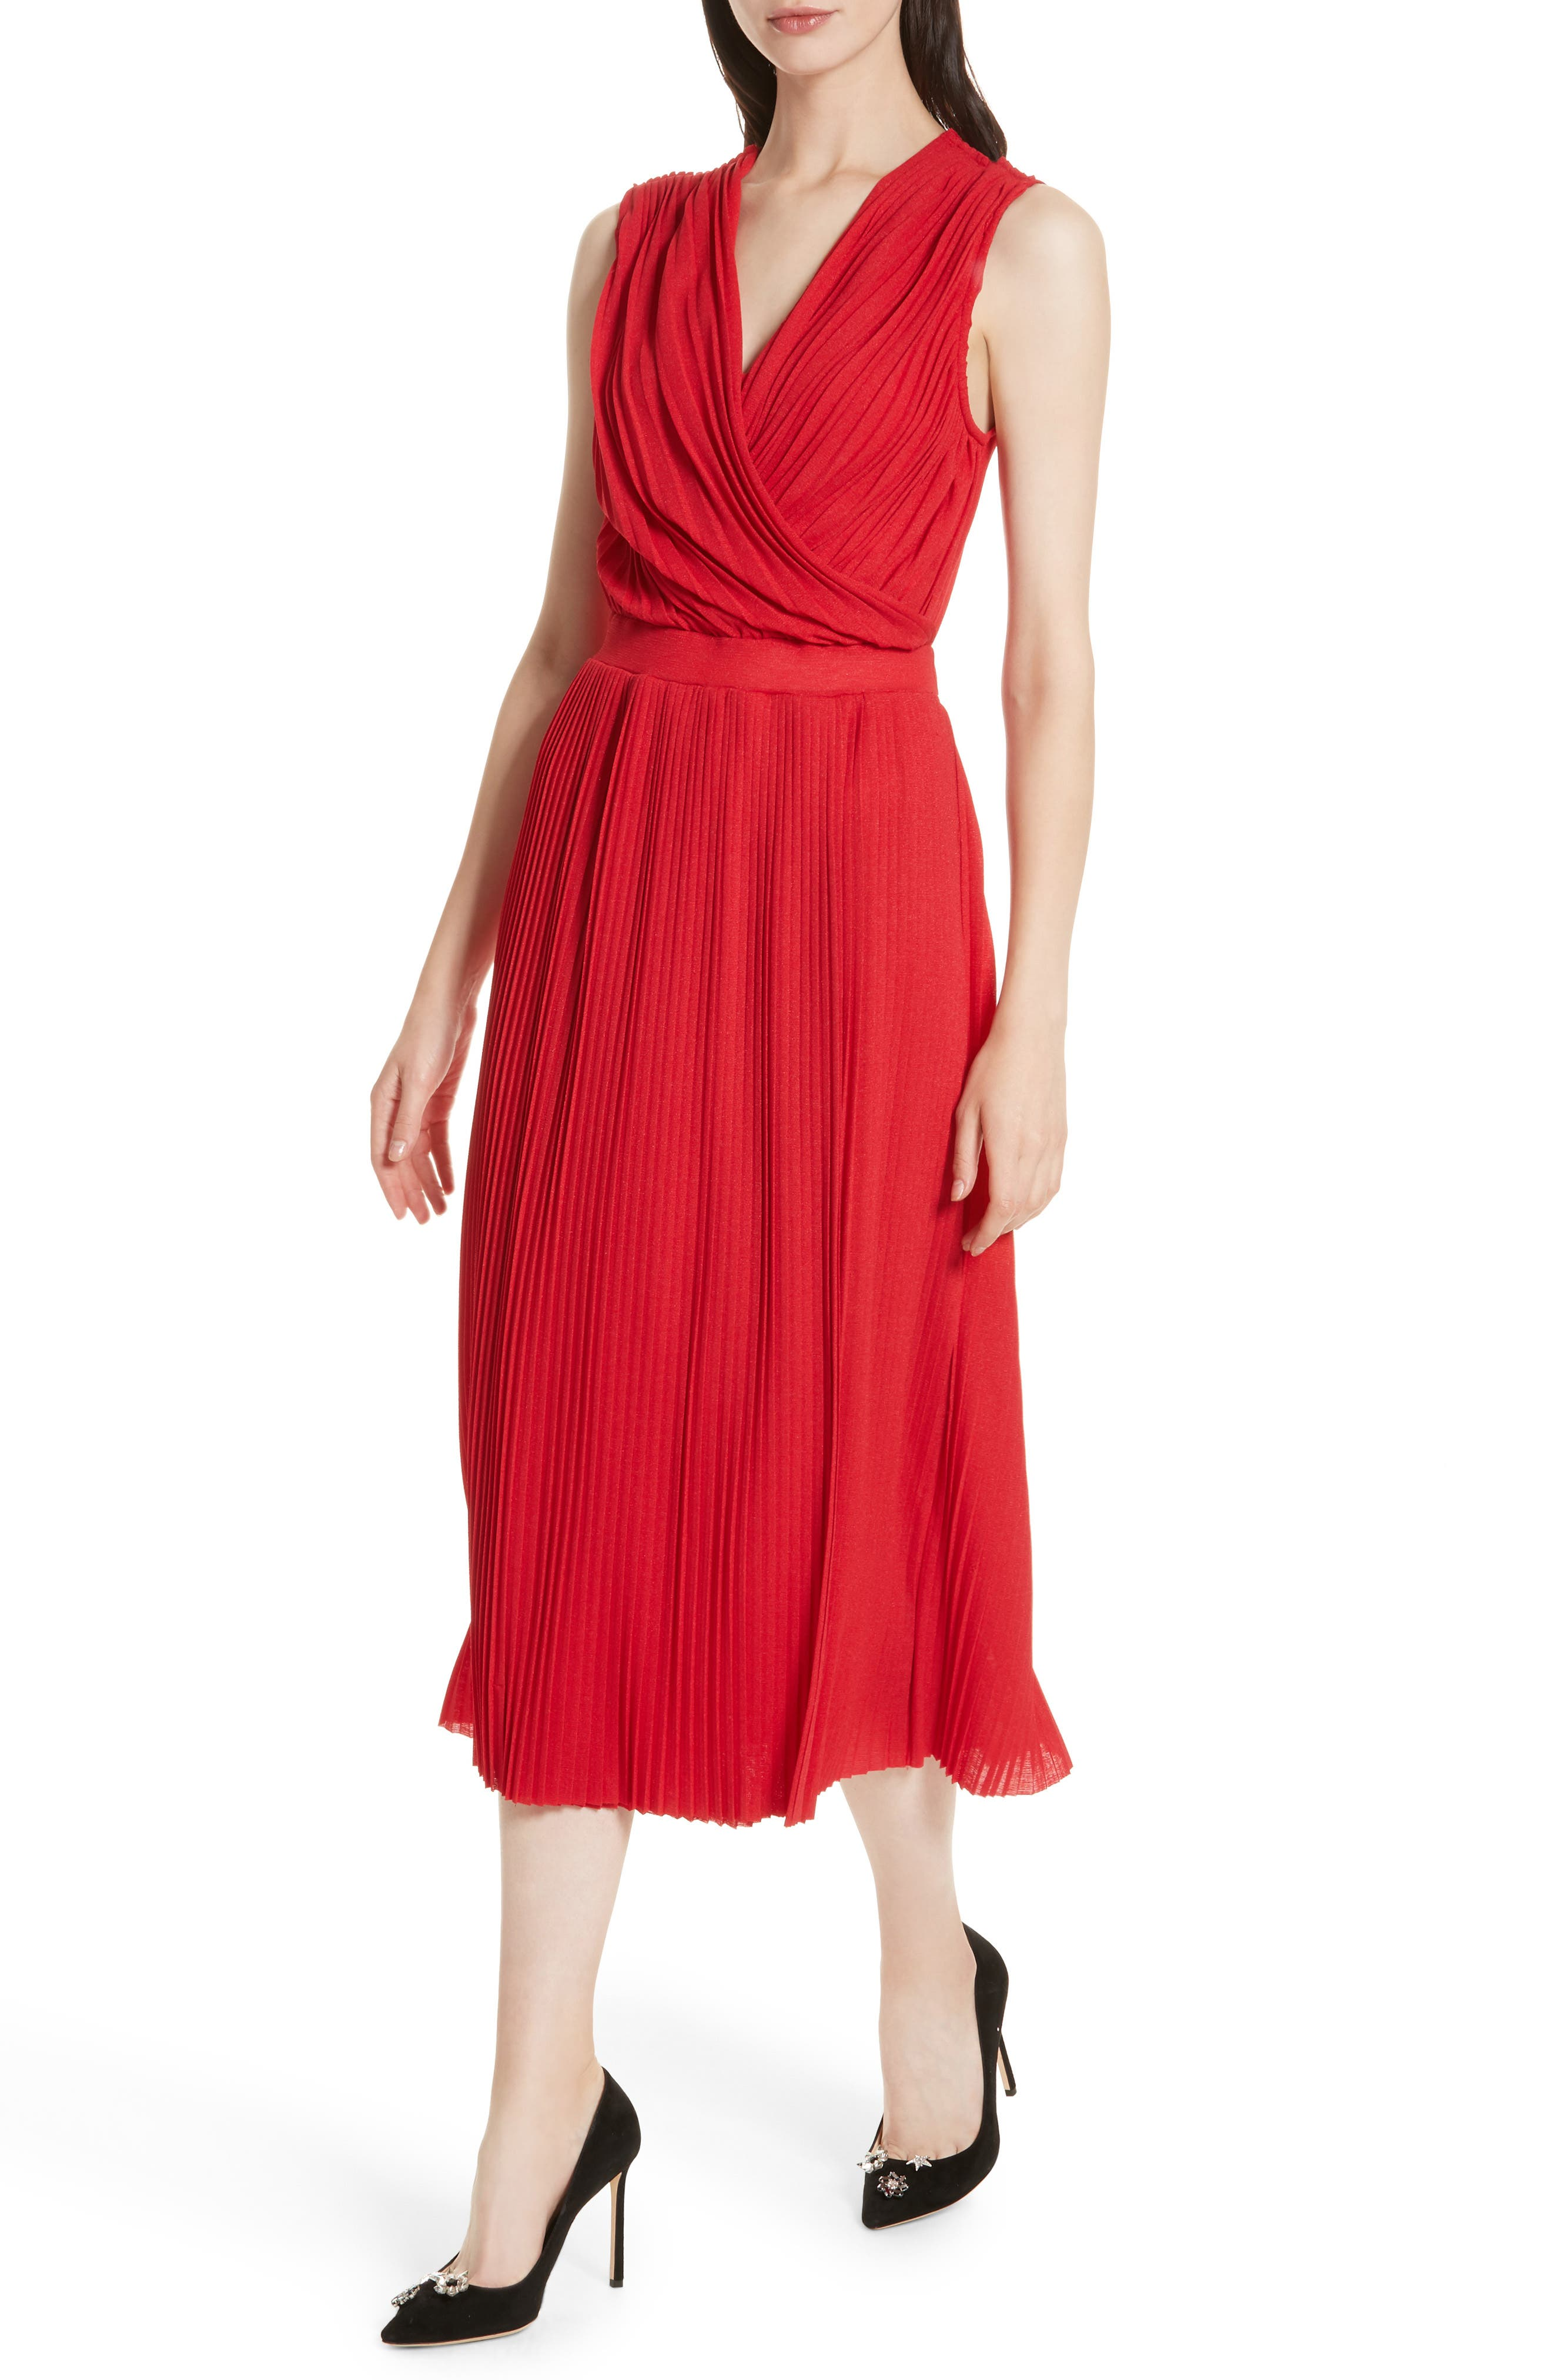 Surplice Fit & Flare Dress,                             Alternate thumbnail 4, color,                             Red Lacquer